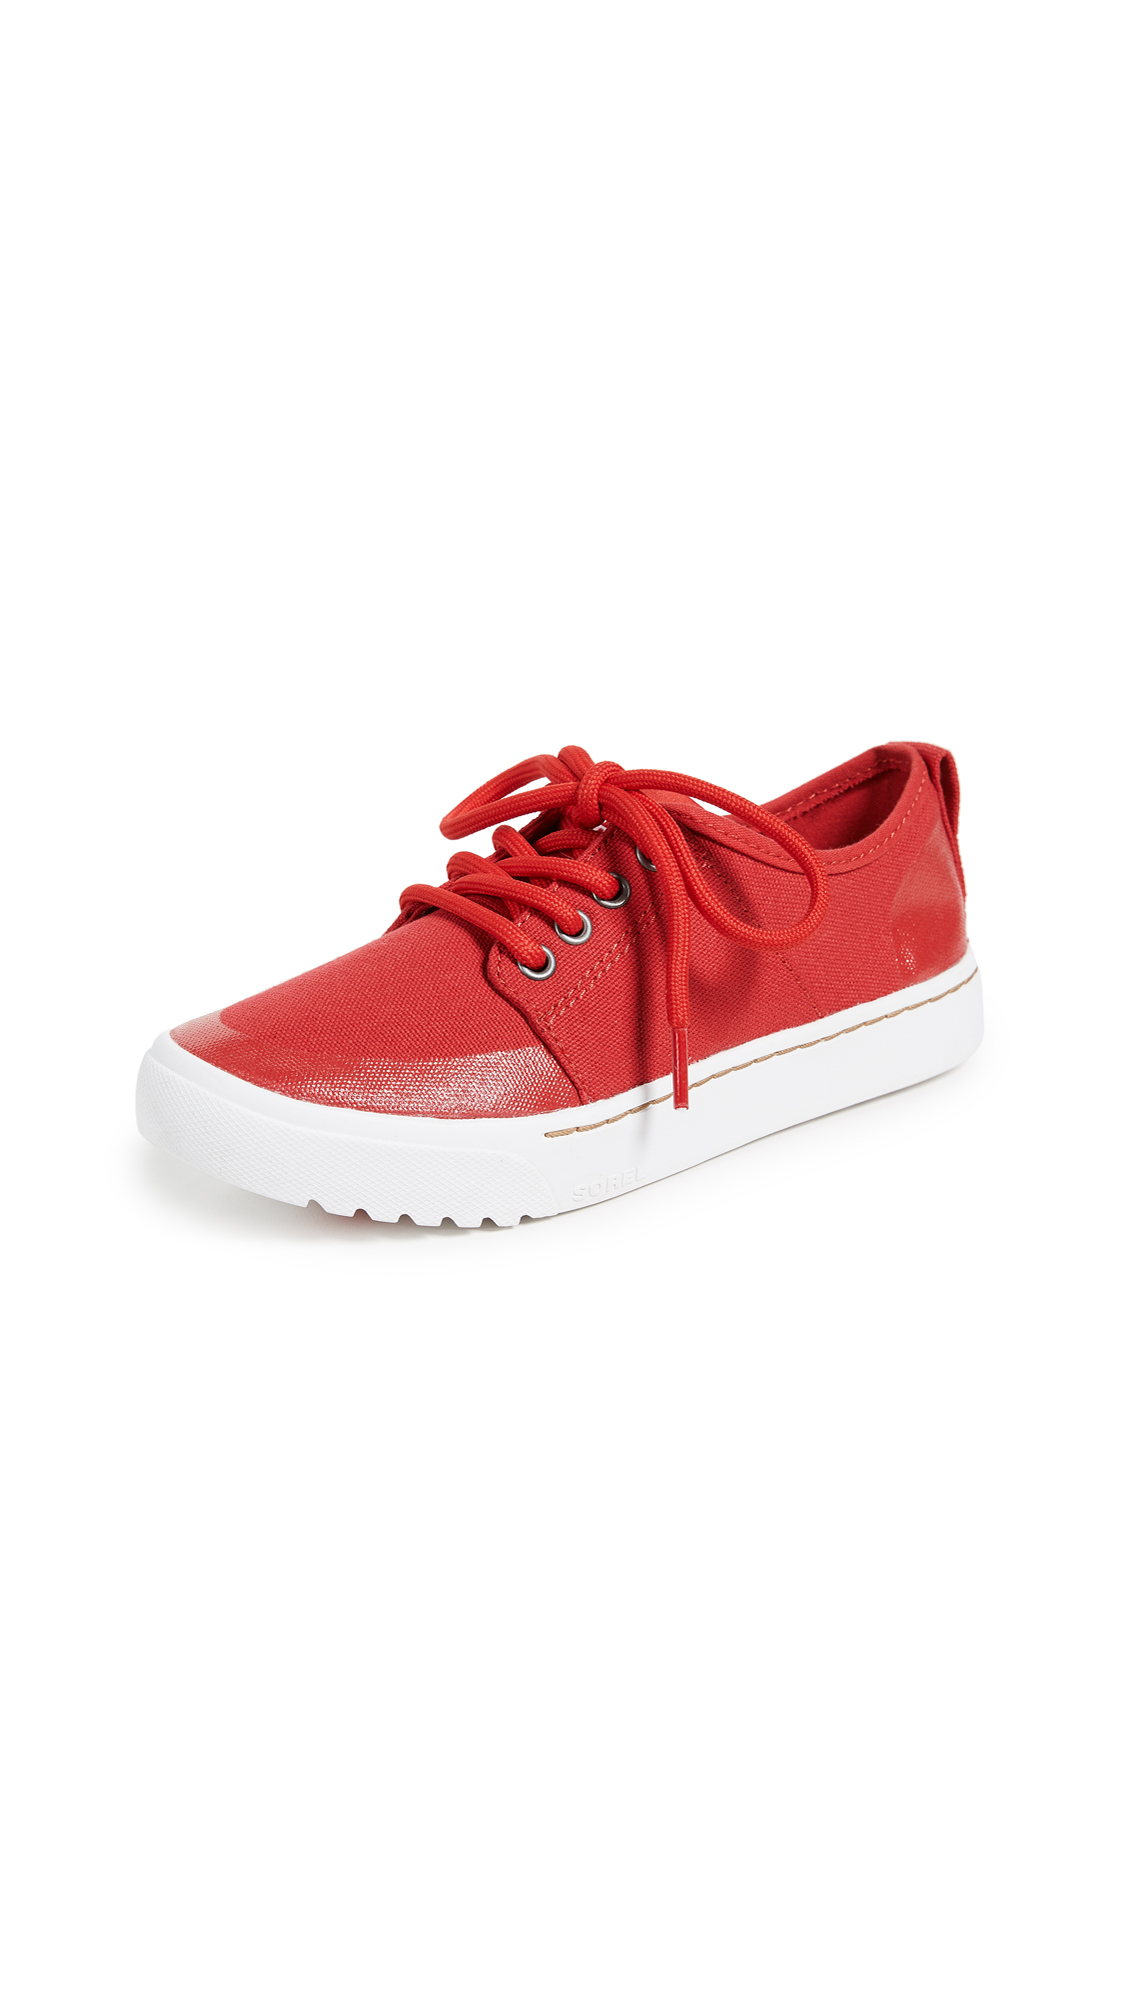 Sorel Campsneak Lace Up Sneakers - Bright Red